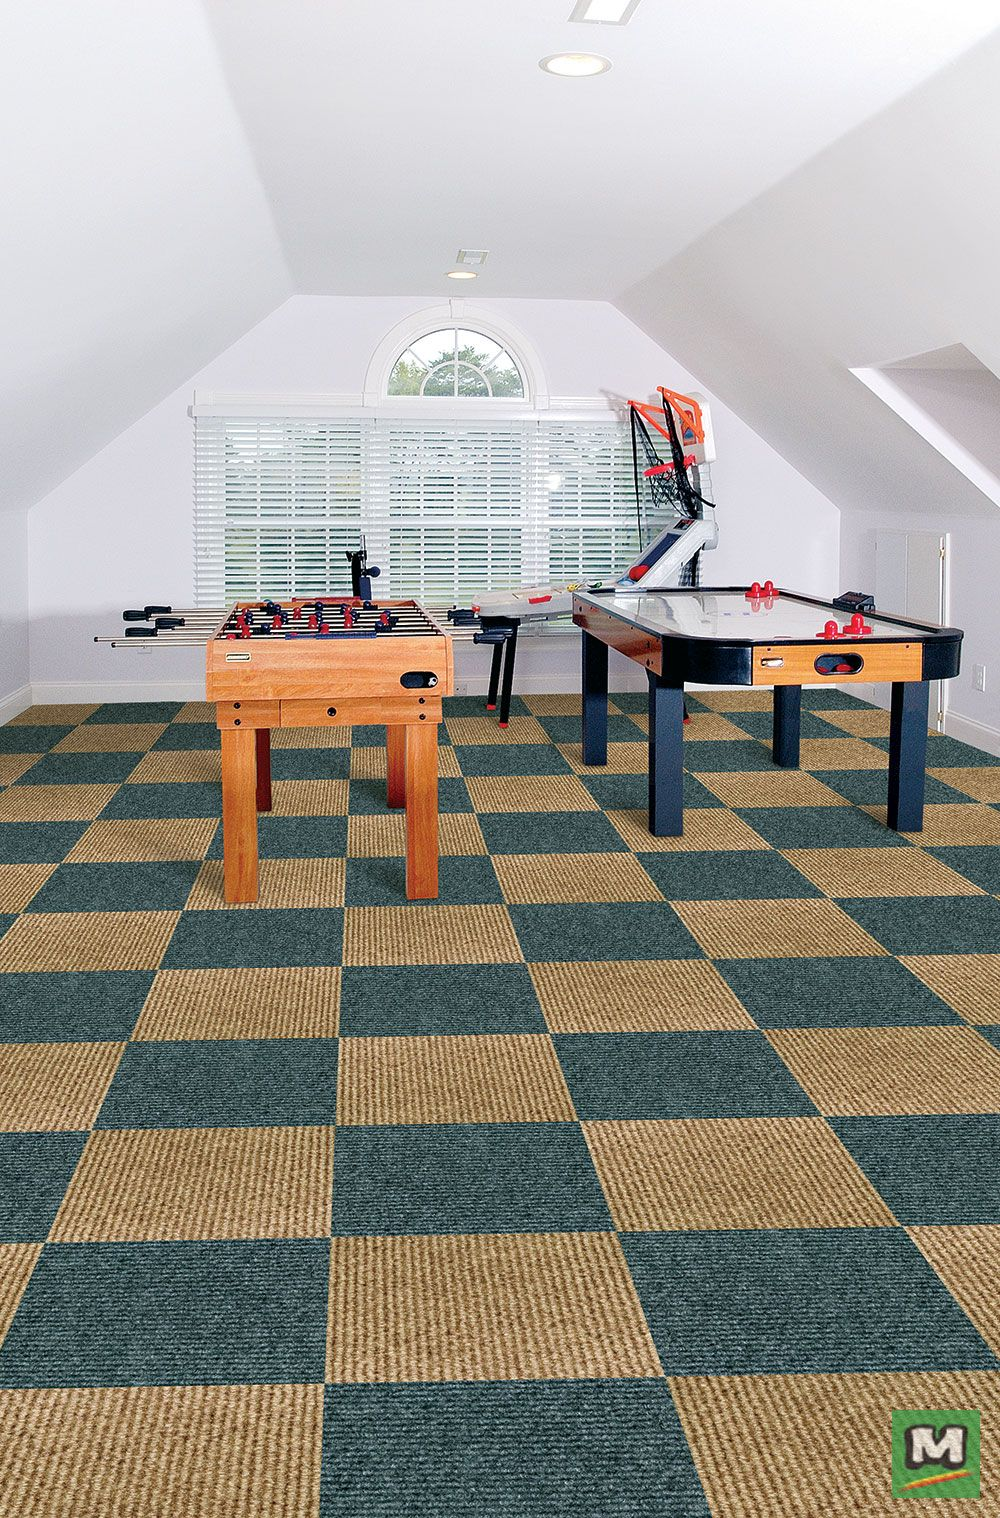 Foss Ozite Quickfloor Carpet Tiles Are The Best Choice If You Want A Durable And Easy To Install Flooring S Carpet Tiles Floor Carpet Tiles Flooring Options